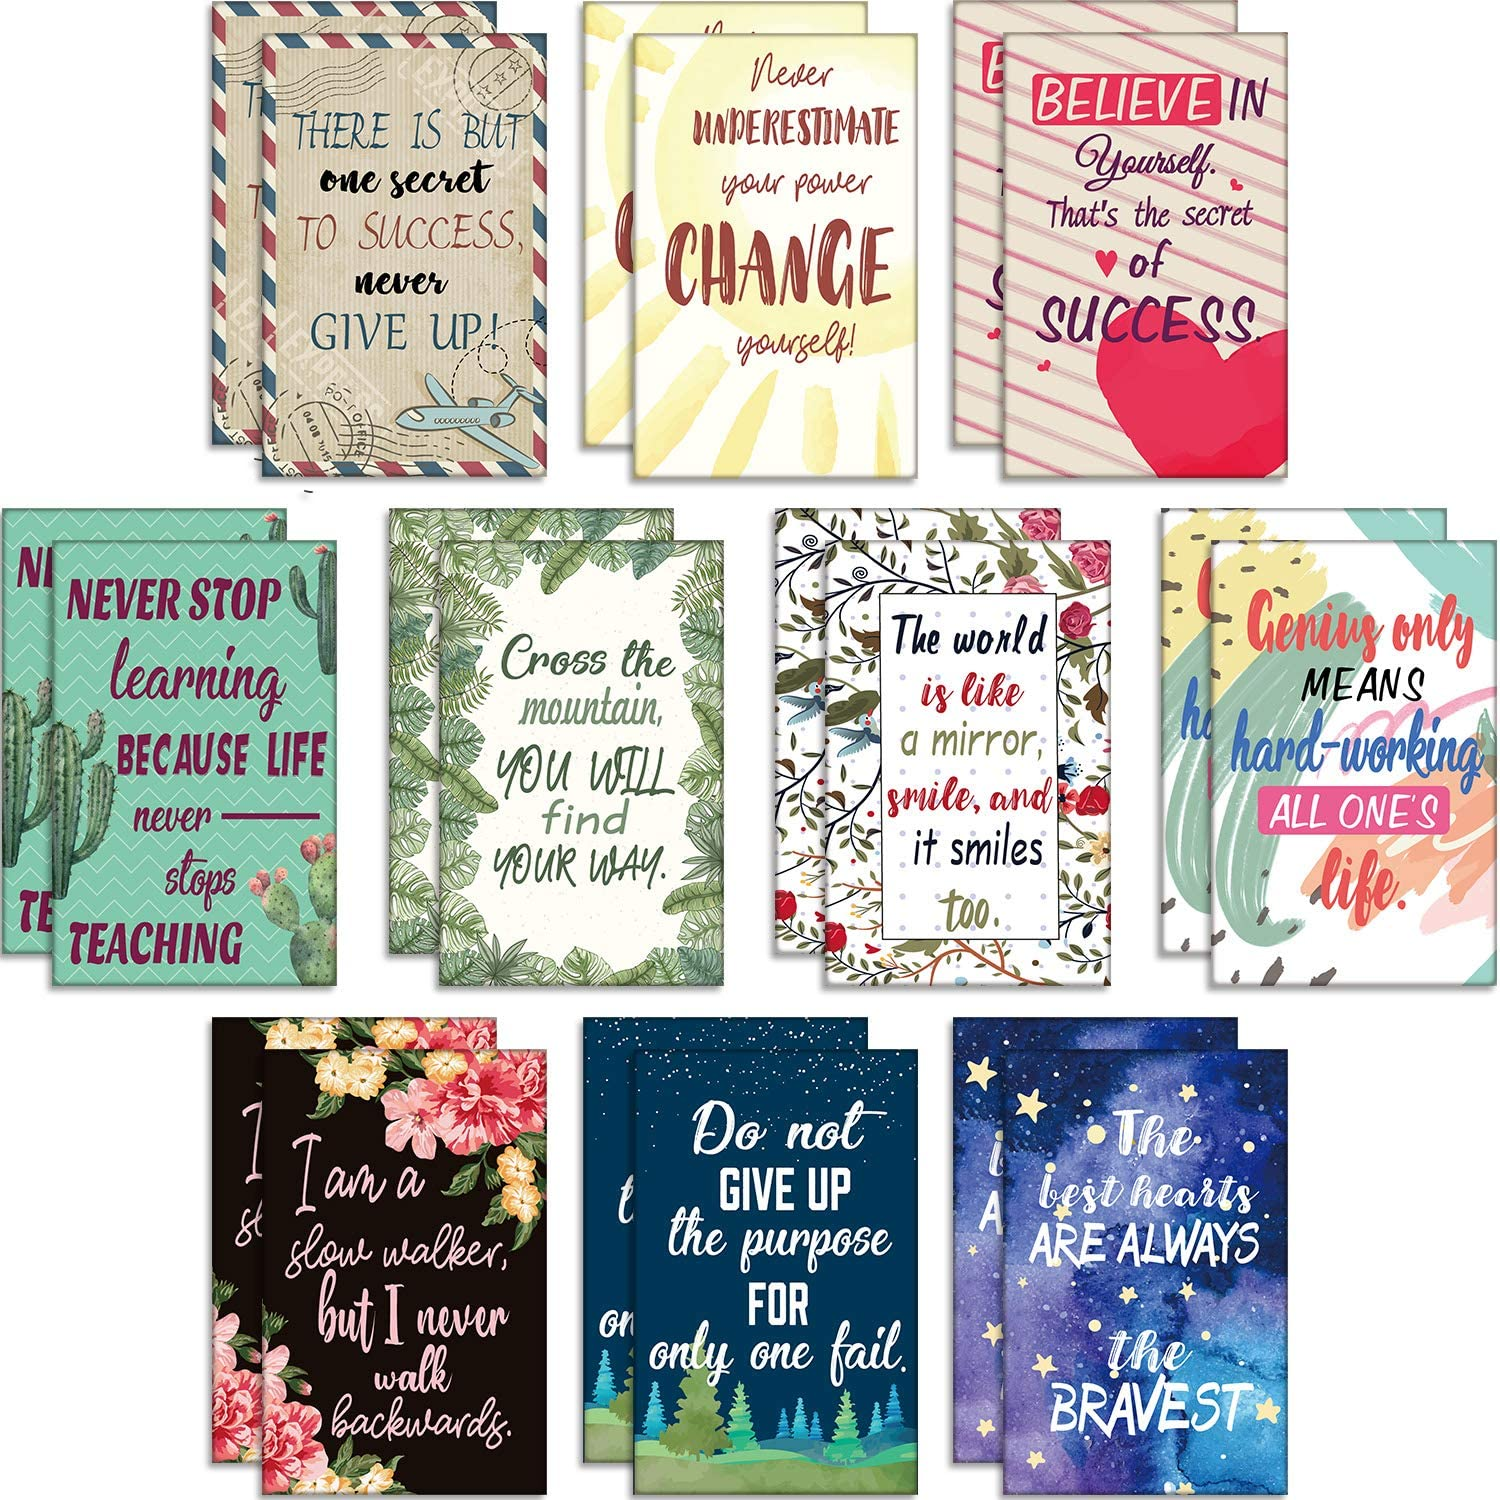 20 Pieces Floral Inspirational Notebooks Small Pocket Notepads Mini Cute Motivational Journal Dairy Notebook Positive Inspiring Notebook for Office School Home Travel Supplies, 10 Styles